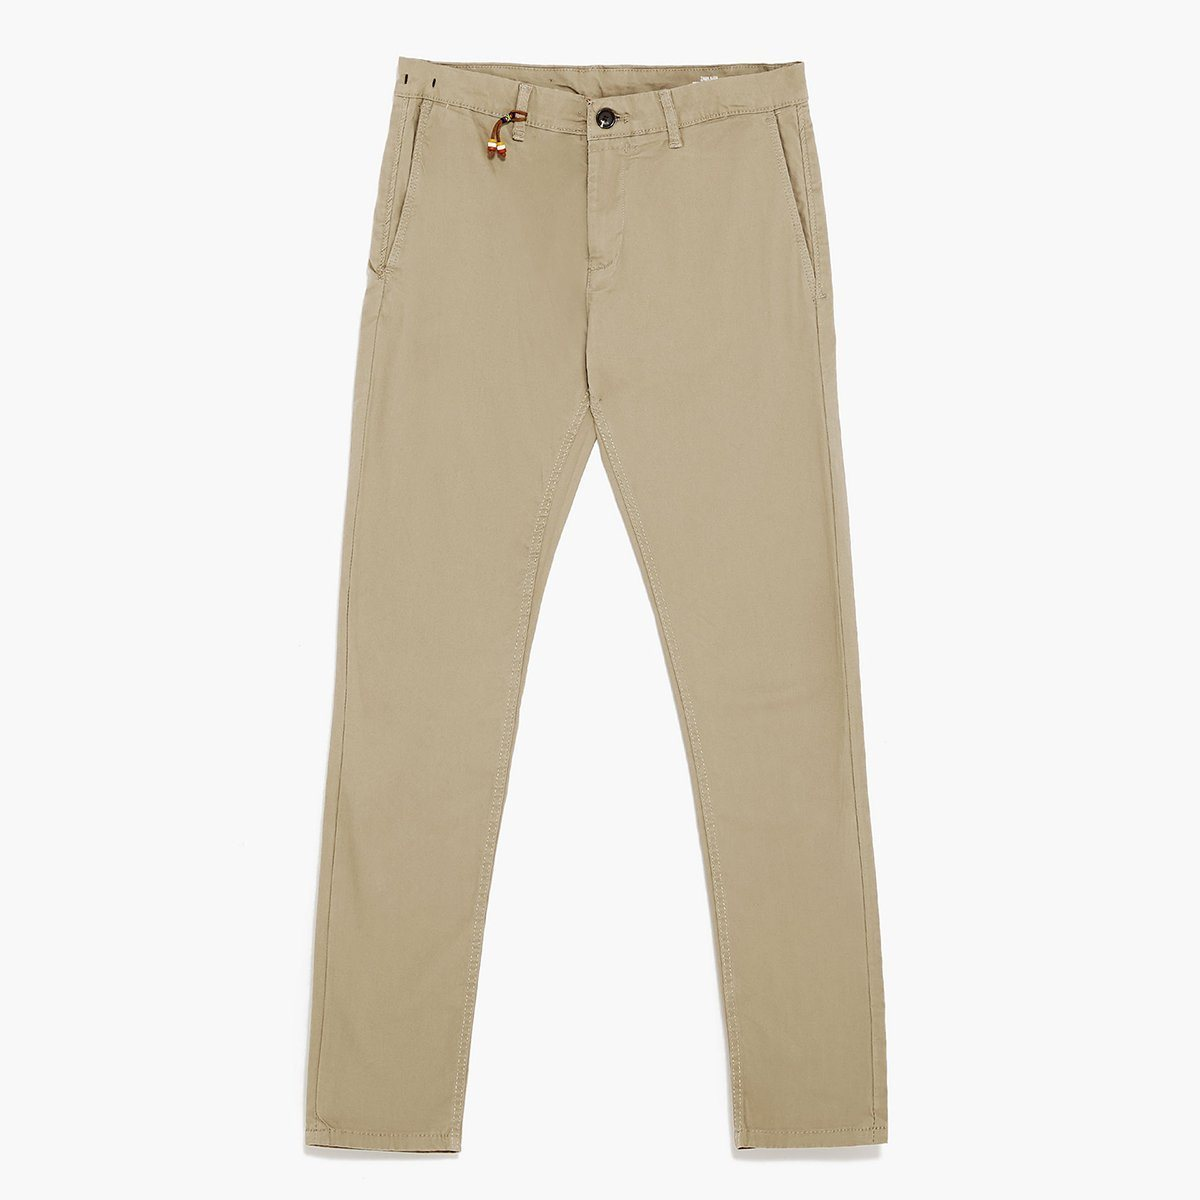 ZR - Stretch Mink cotton 'skinny fit' chino